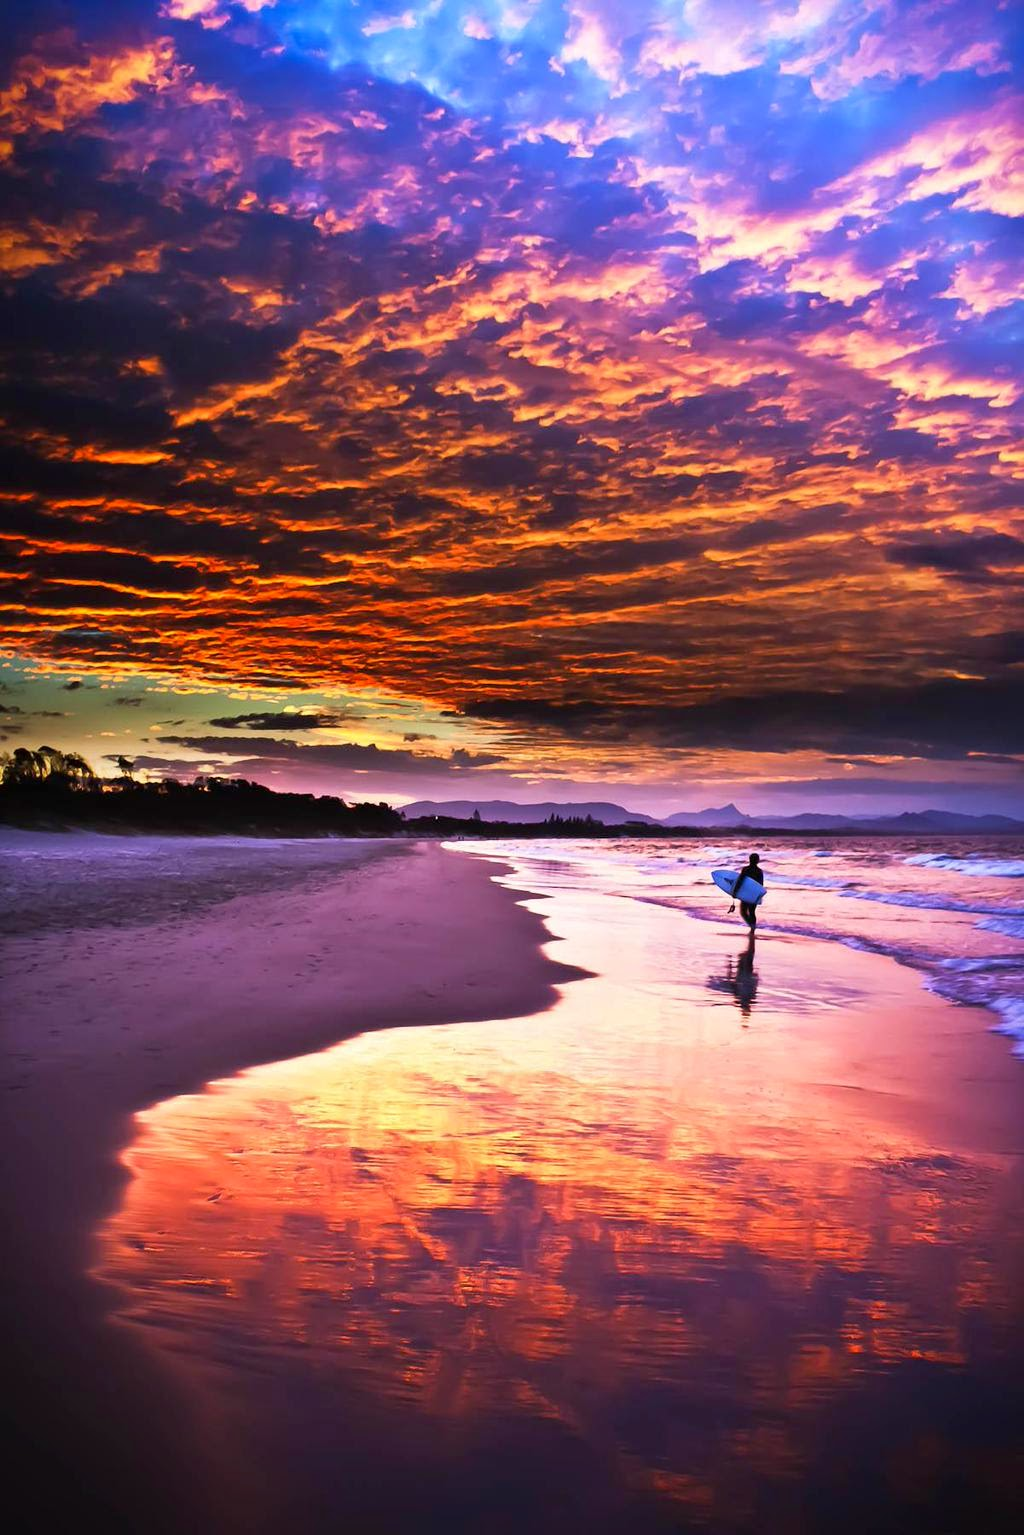 Byron Beach Sunset, Australia  | Australia the perfect land photography lovers